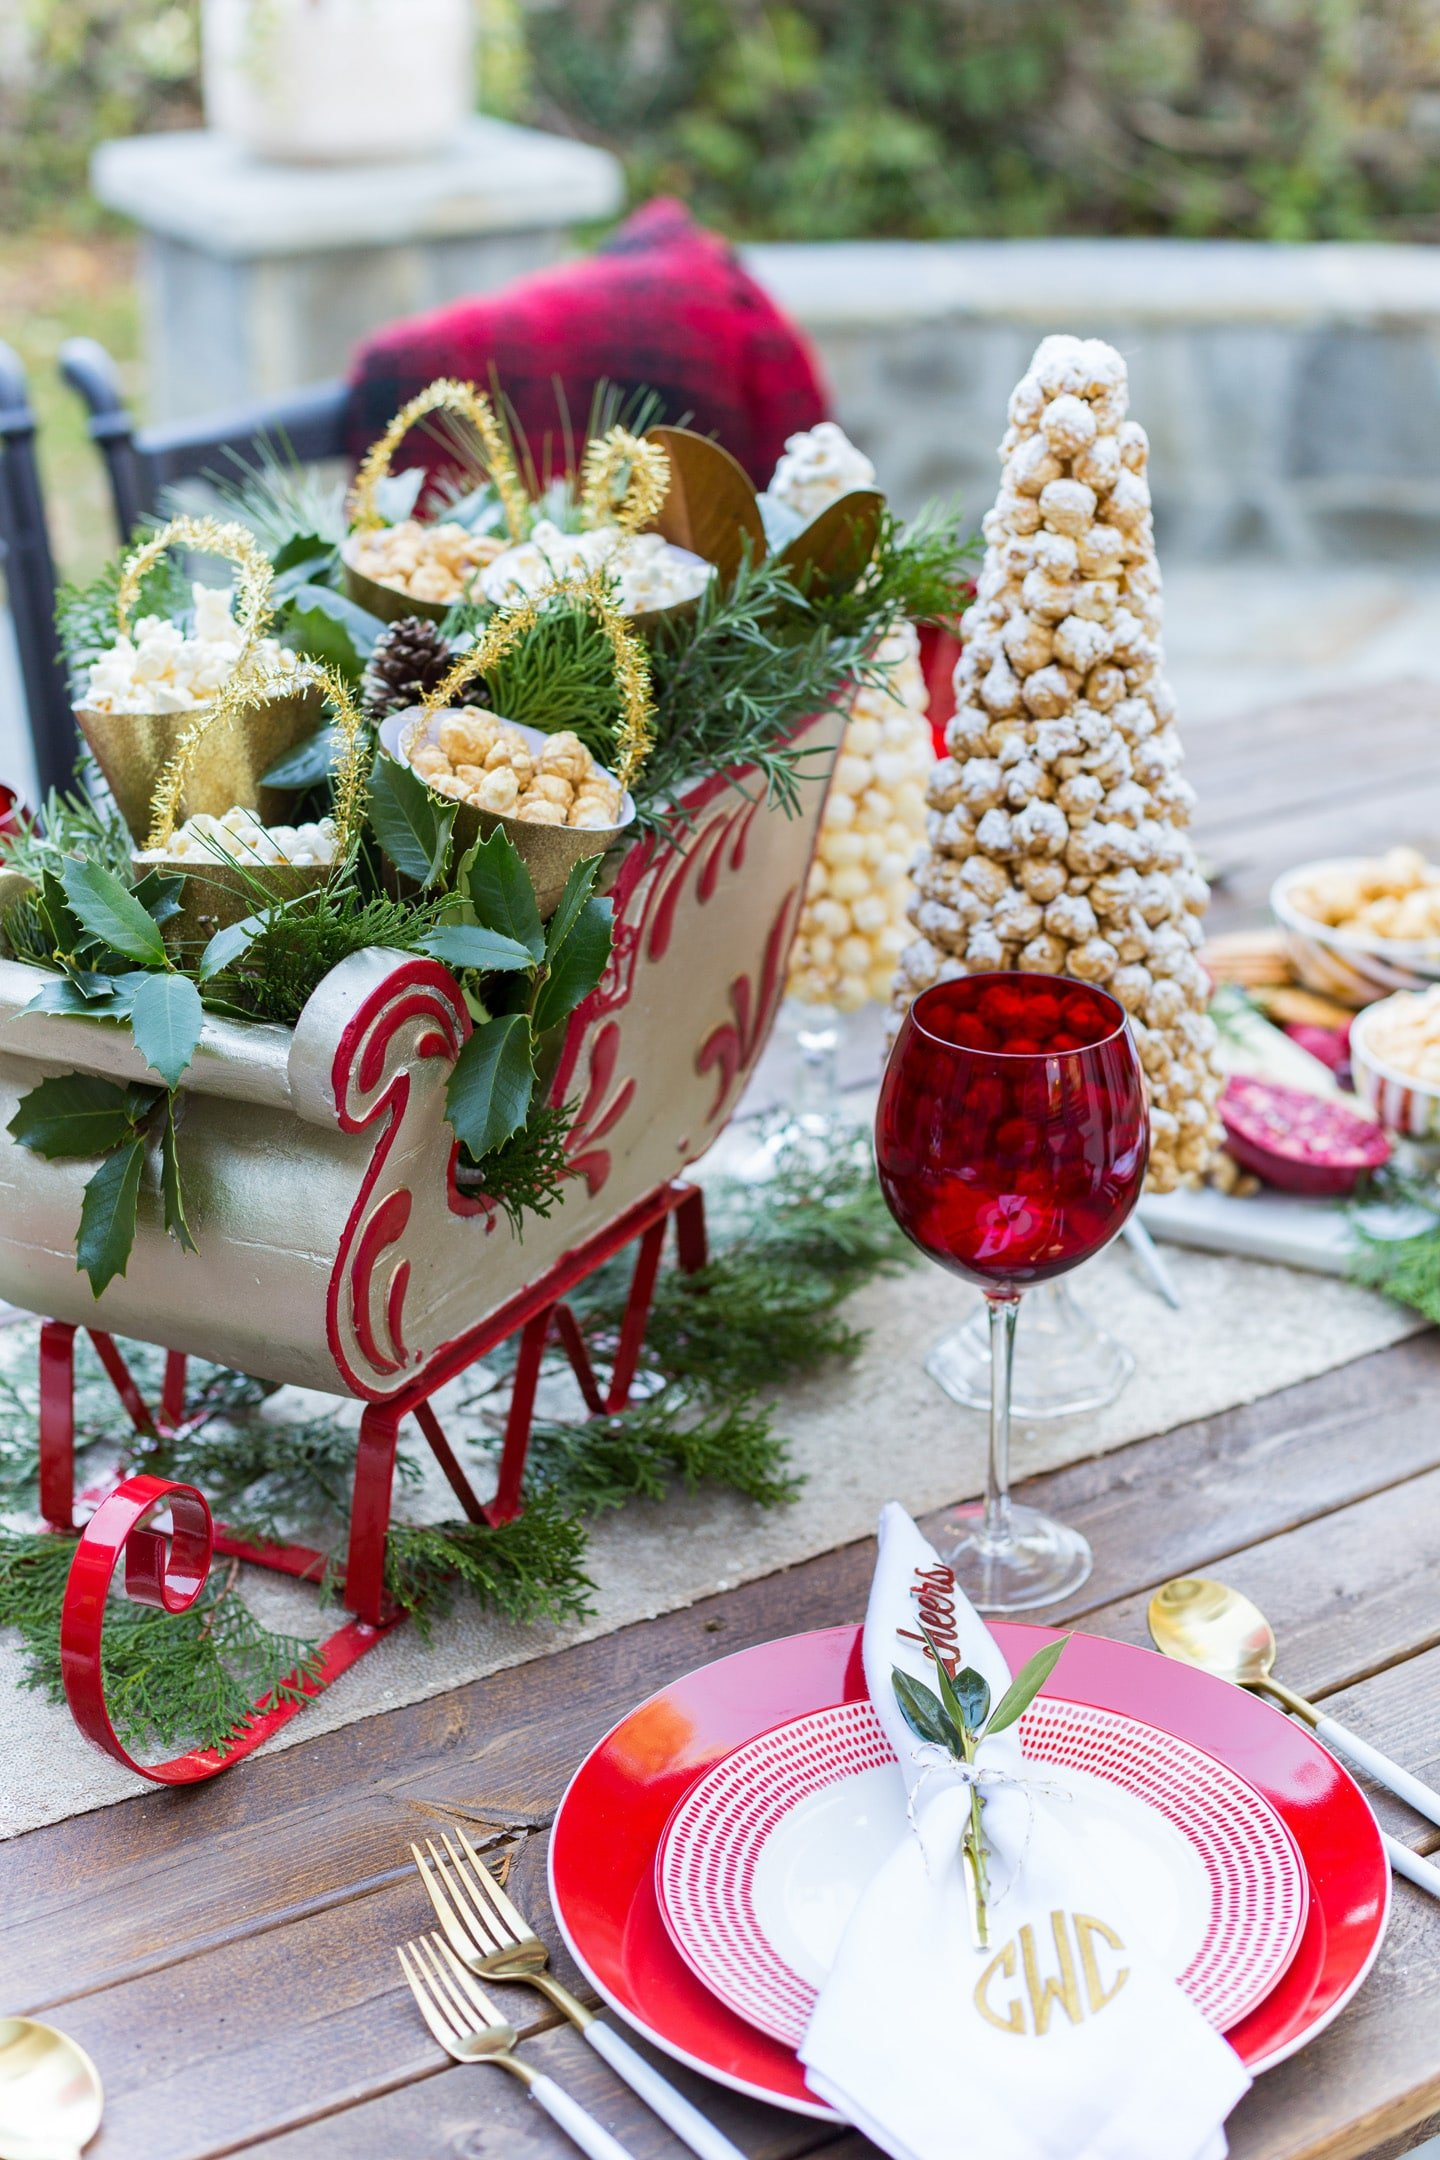 Festive Holiday Tablescape with Popcorn details!